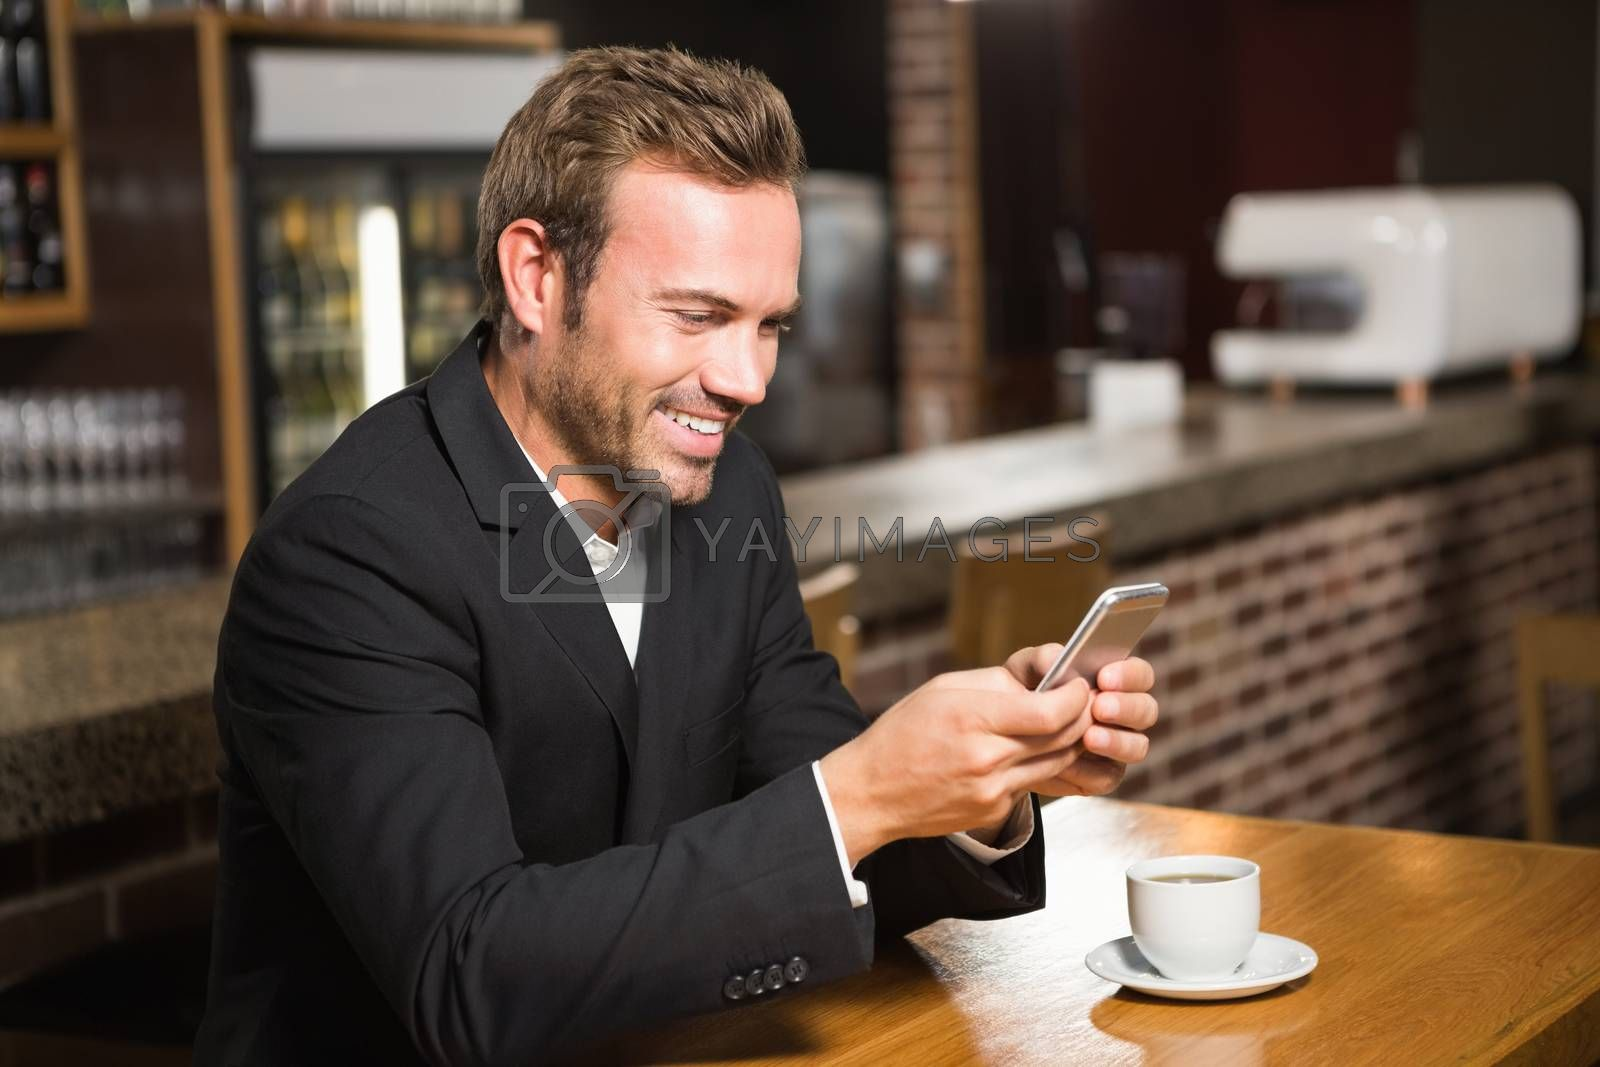 Handsome man looking at smartphone and having a coffee in a pub